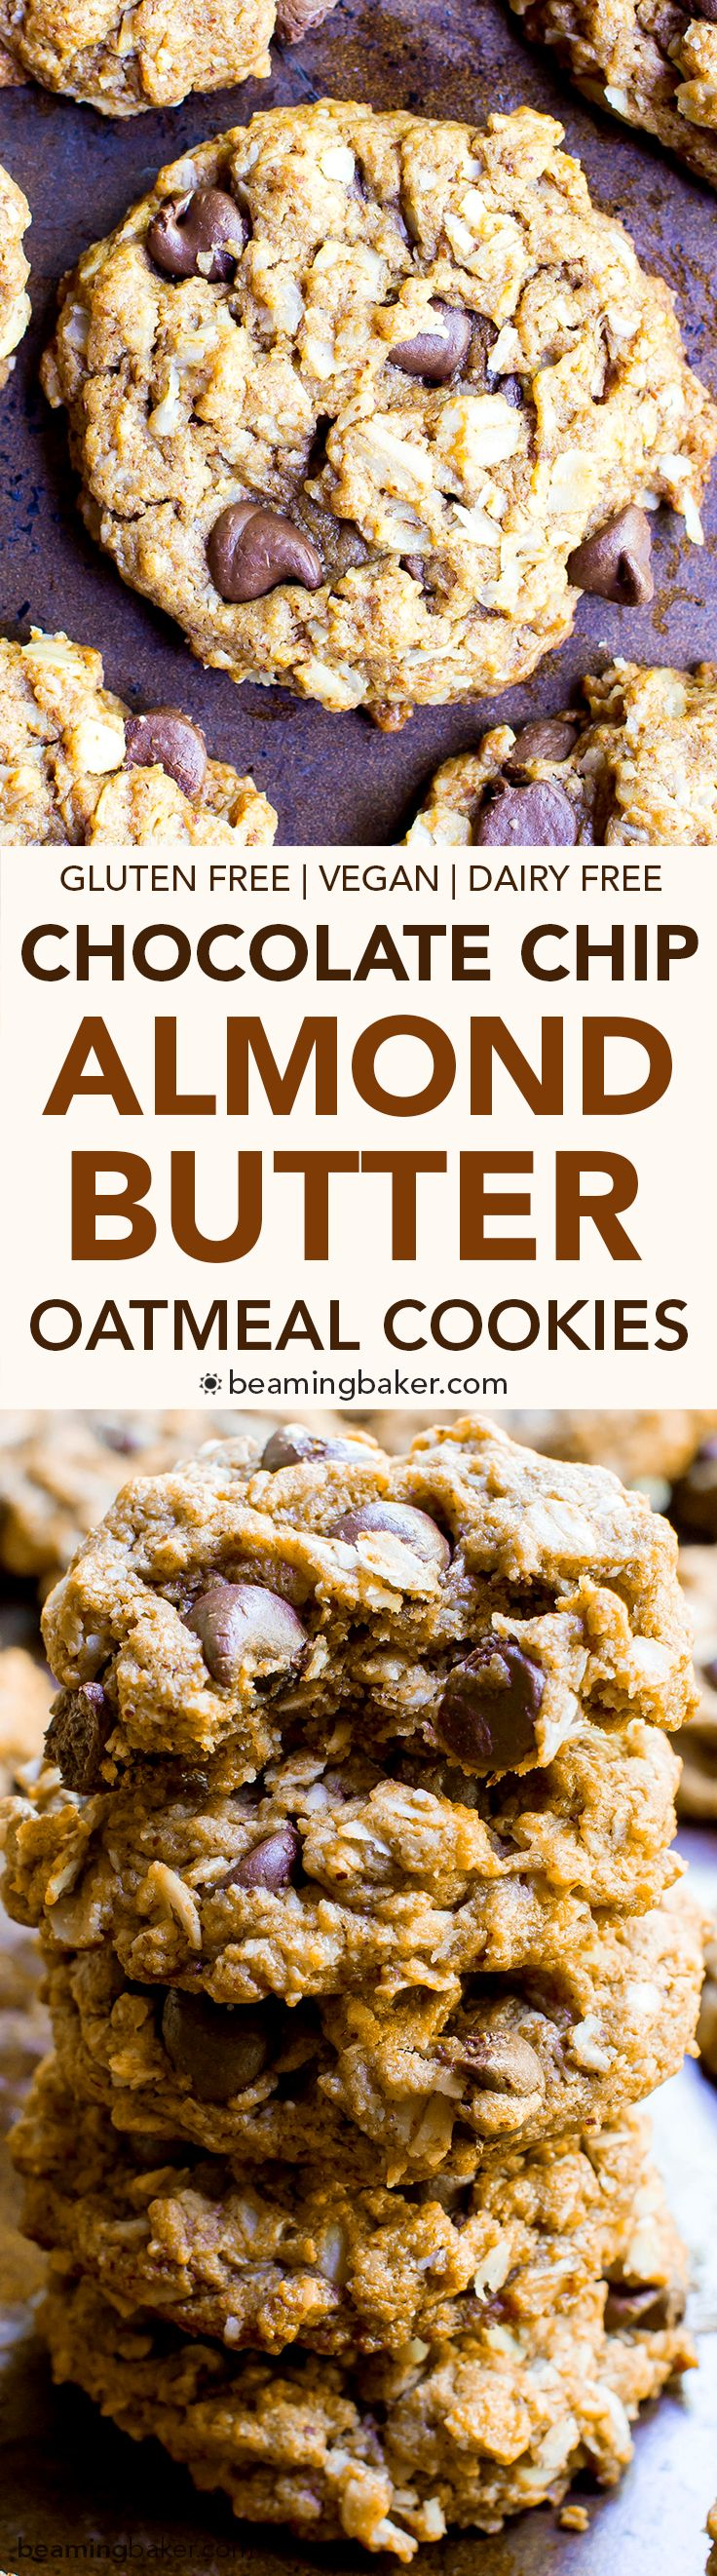 Almond Butter Oatmeal Chocolate Chip Cookies (V+GF): An easy recipe for deliciously simple chocolate chip cookies packed with almond butter, oats and coconut. #Vegan #GlutenFree #DairyFree | BeamingBaker.com